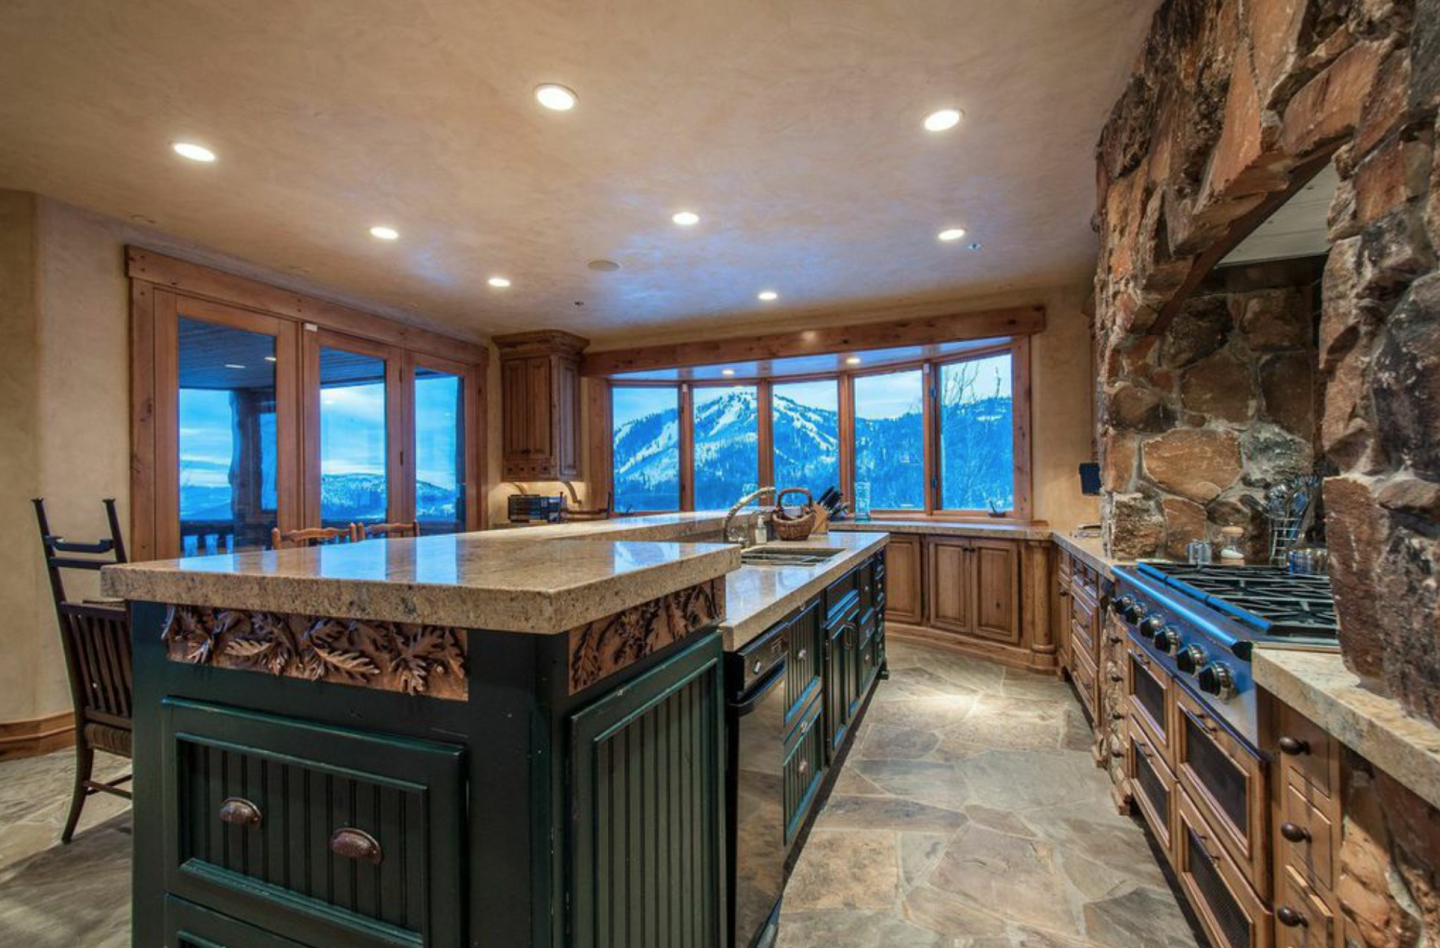 The kitchen has a six-burner stove, an island and a majestic view.